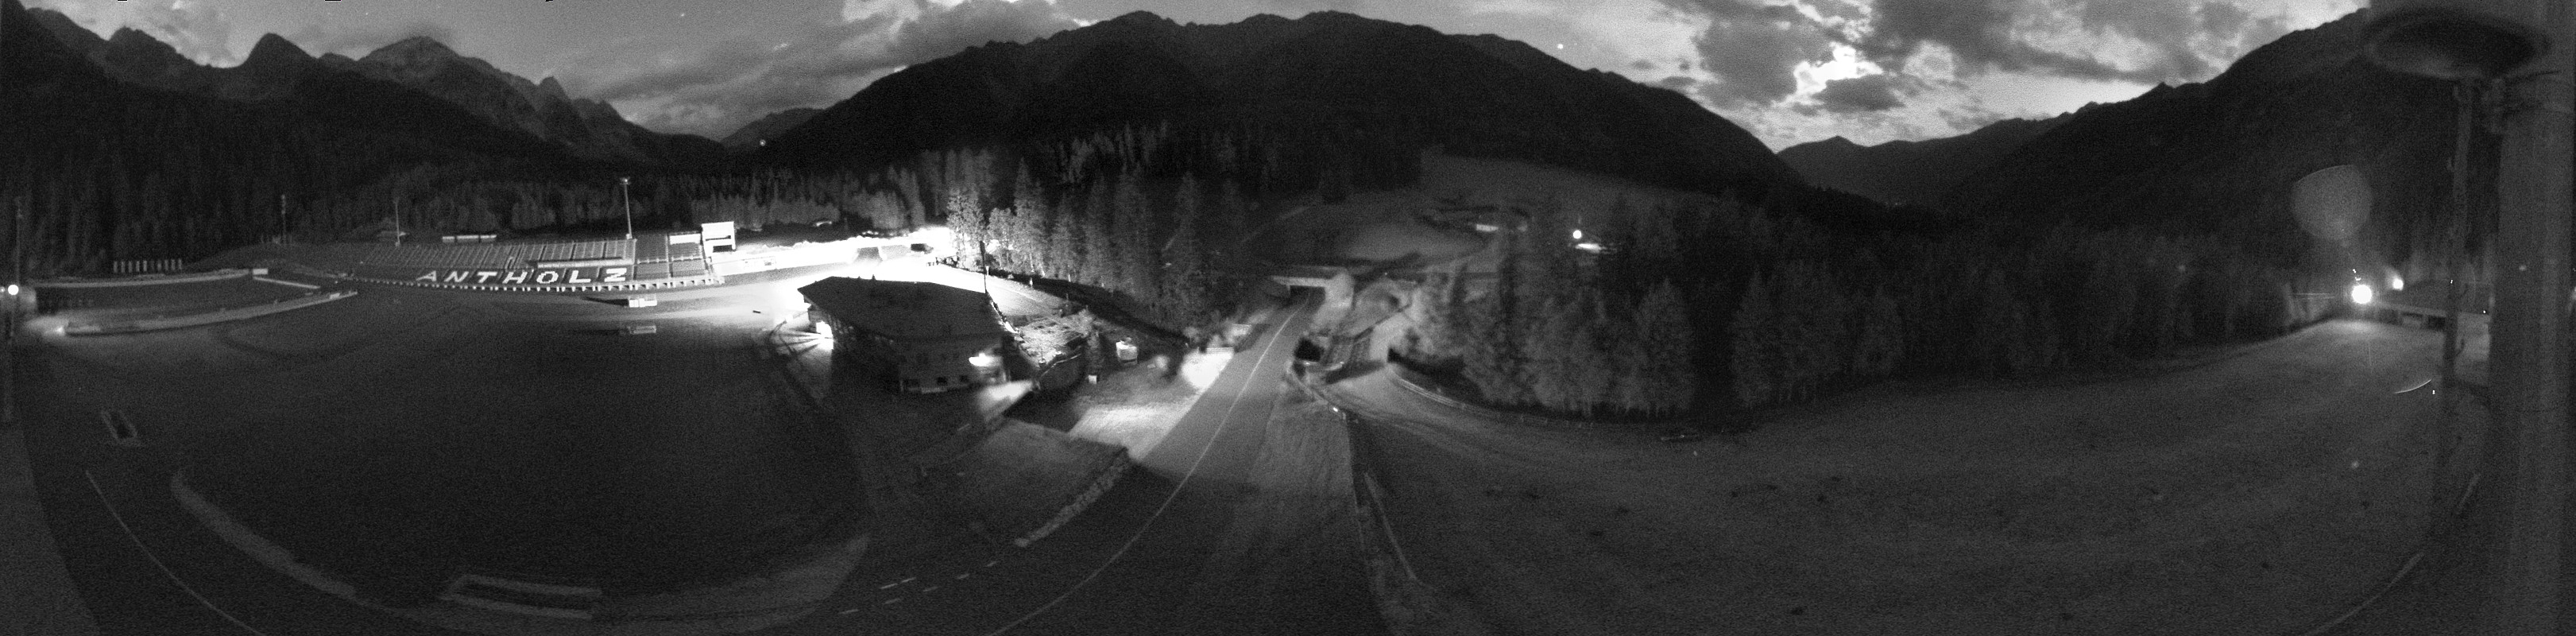 Anterselva Valley Biathlon Centre